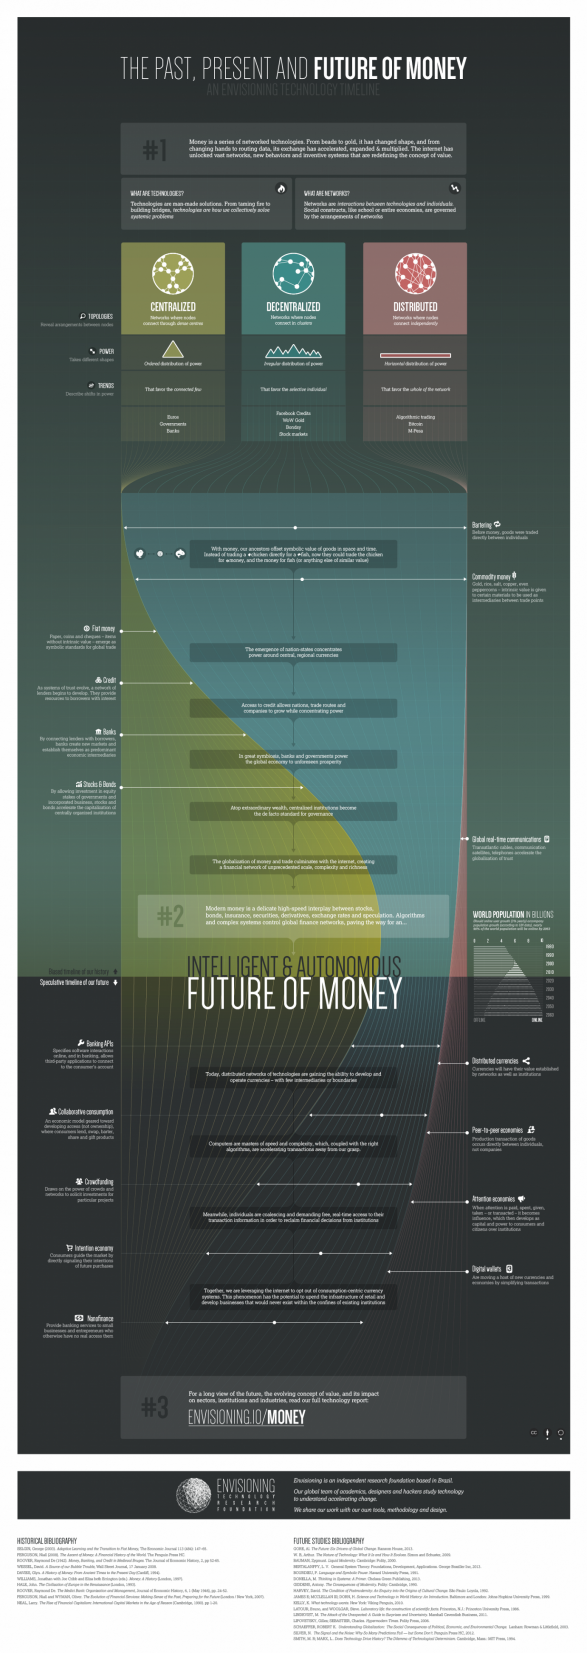 The past, present and future of money